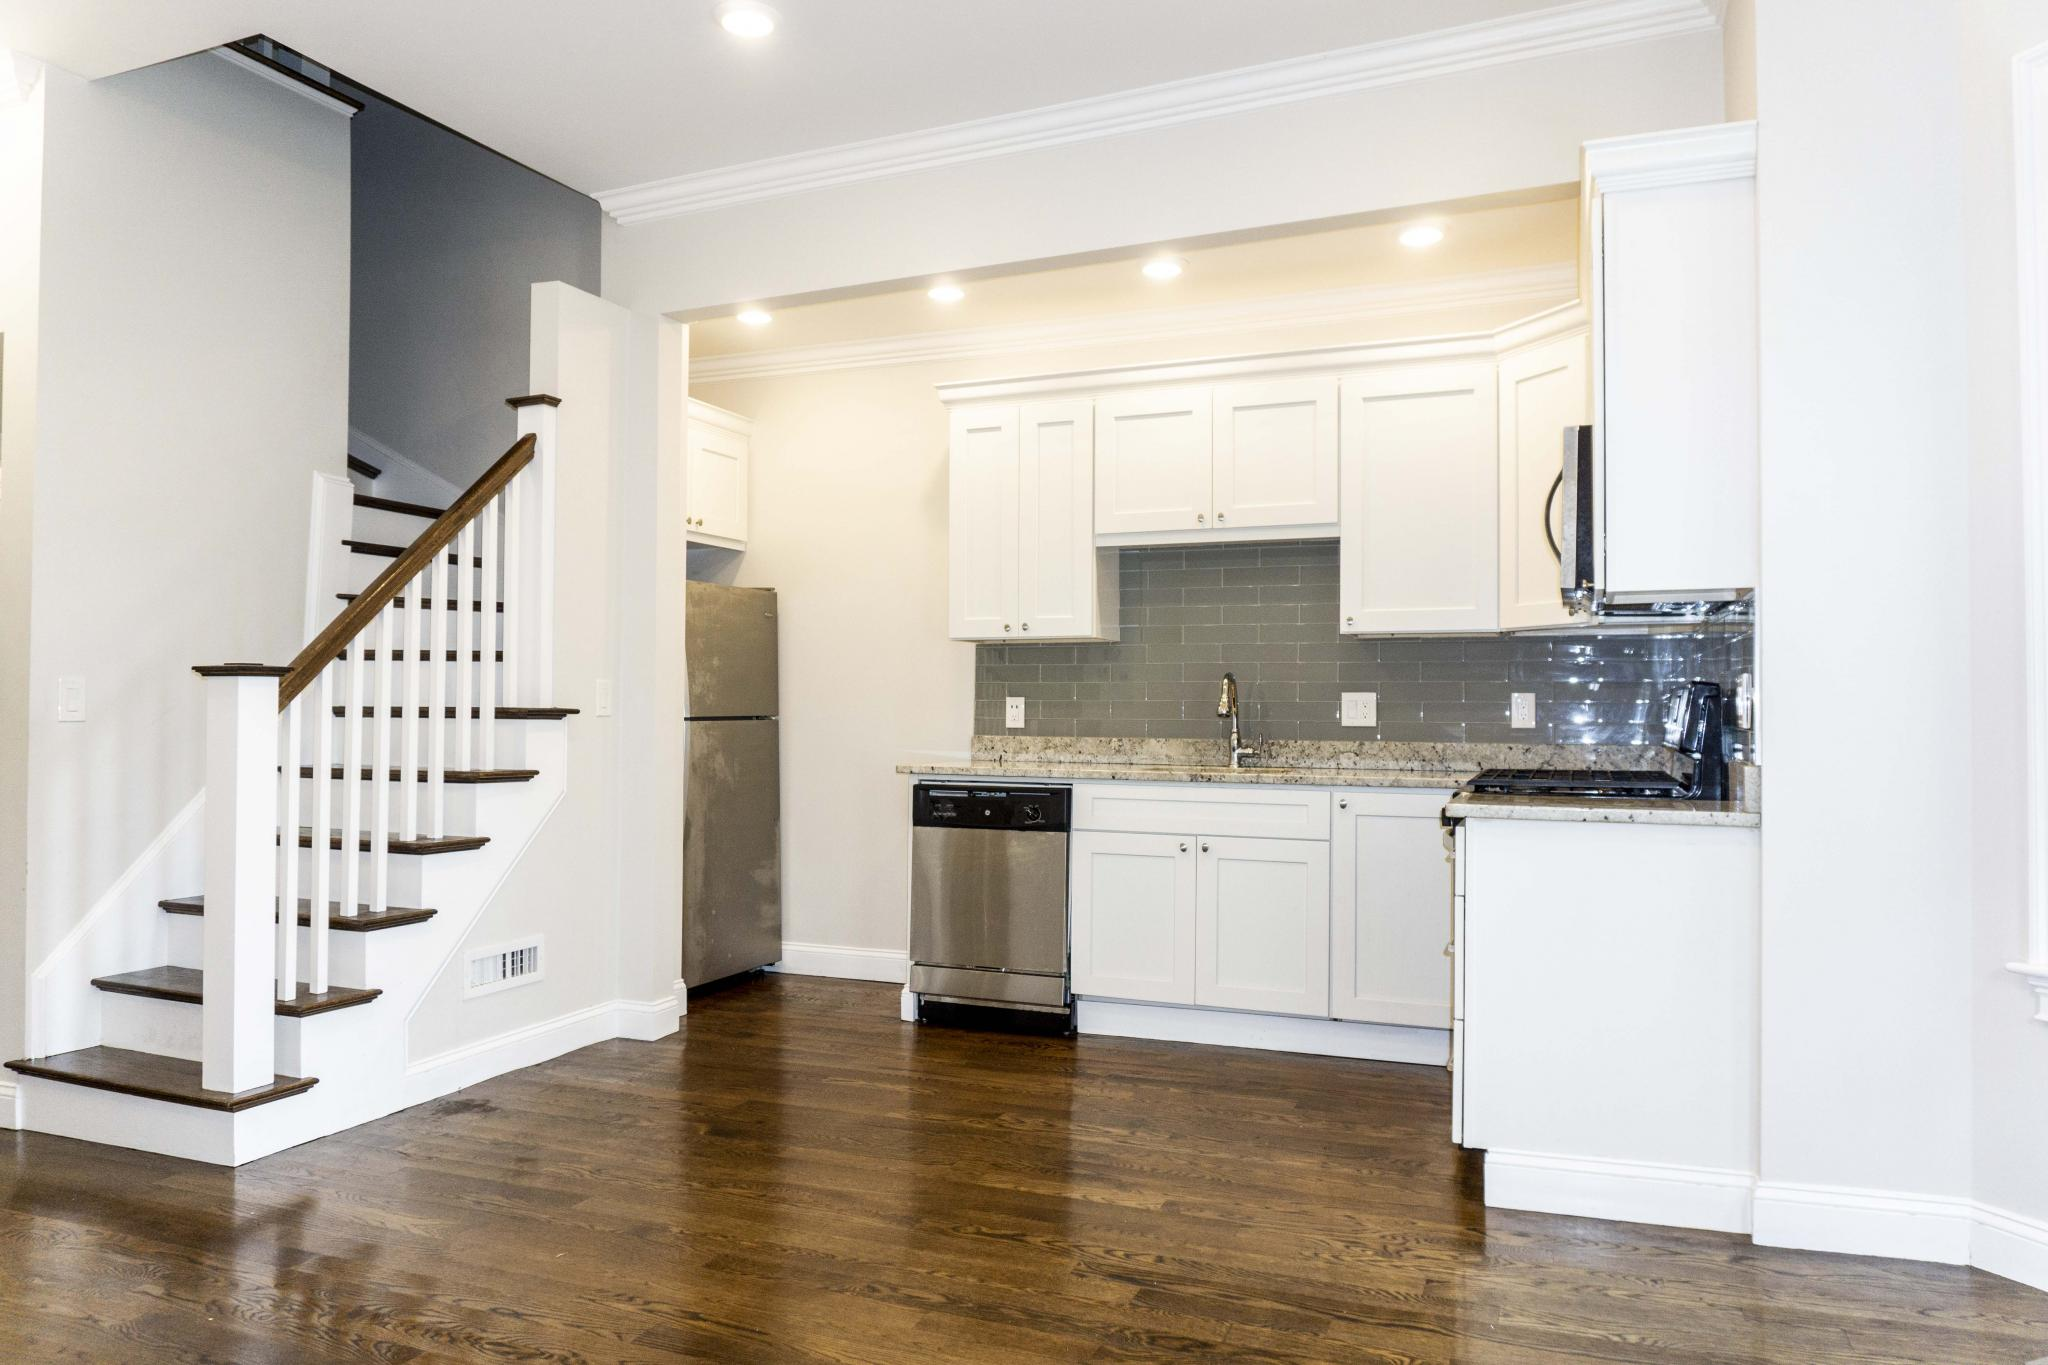 4 Bd on Perrin St., Parking Included